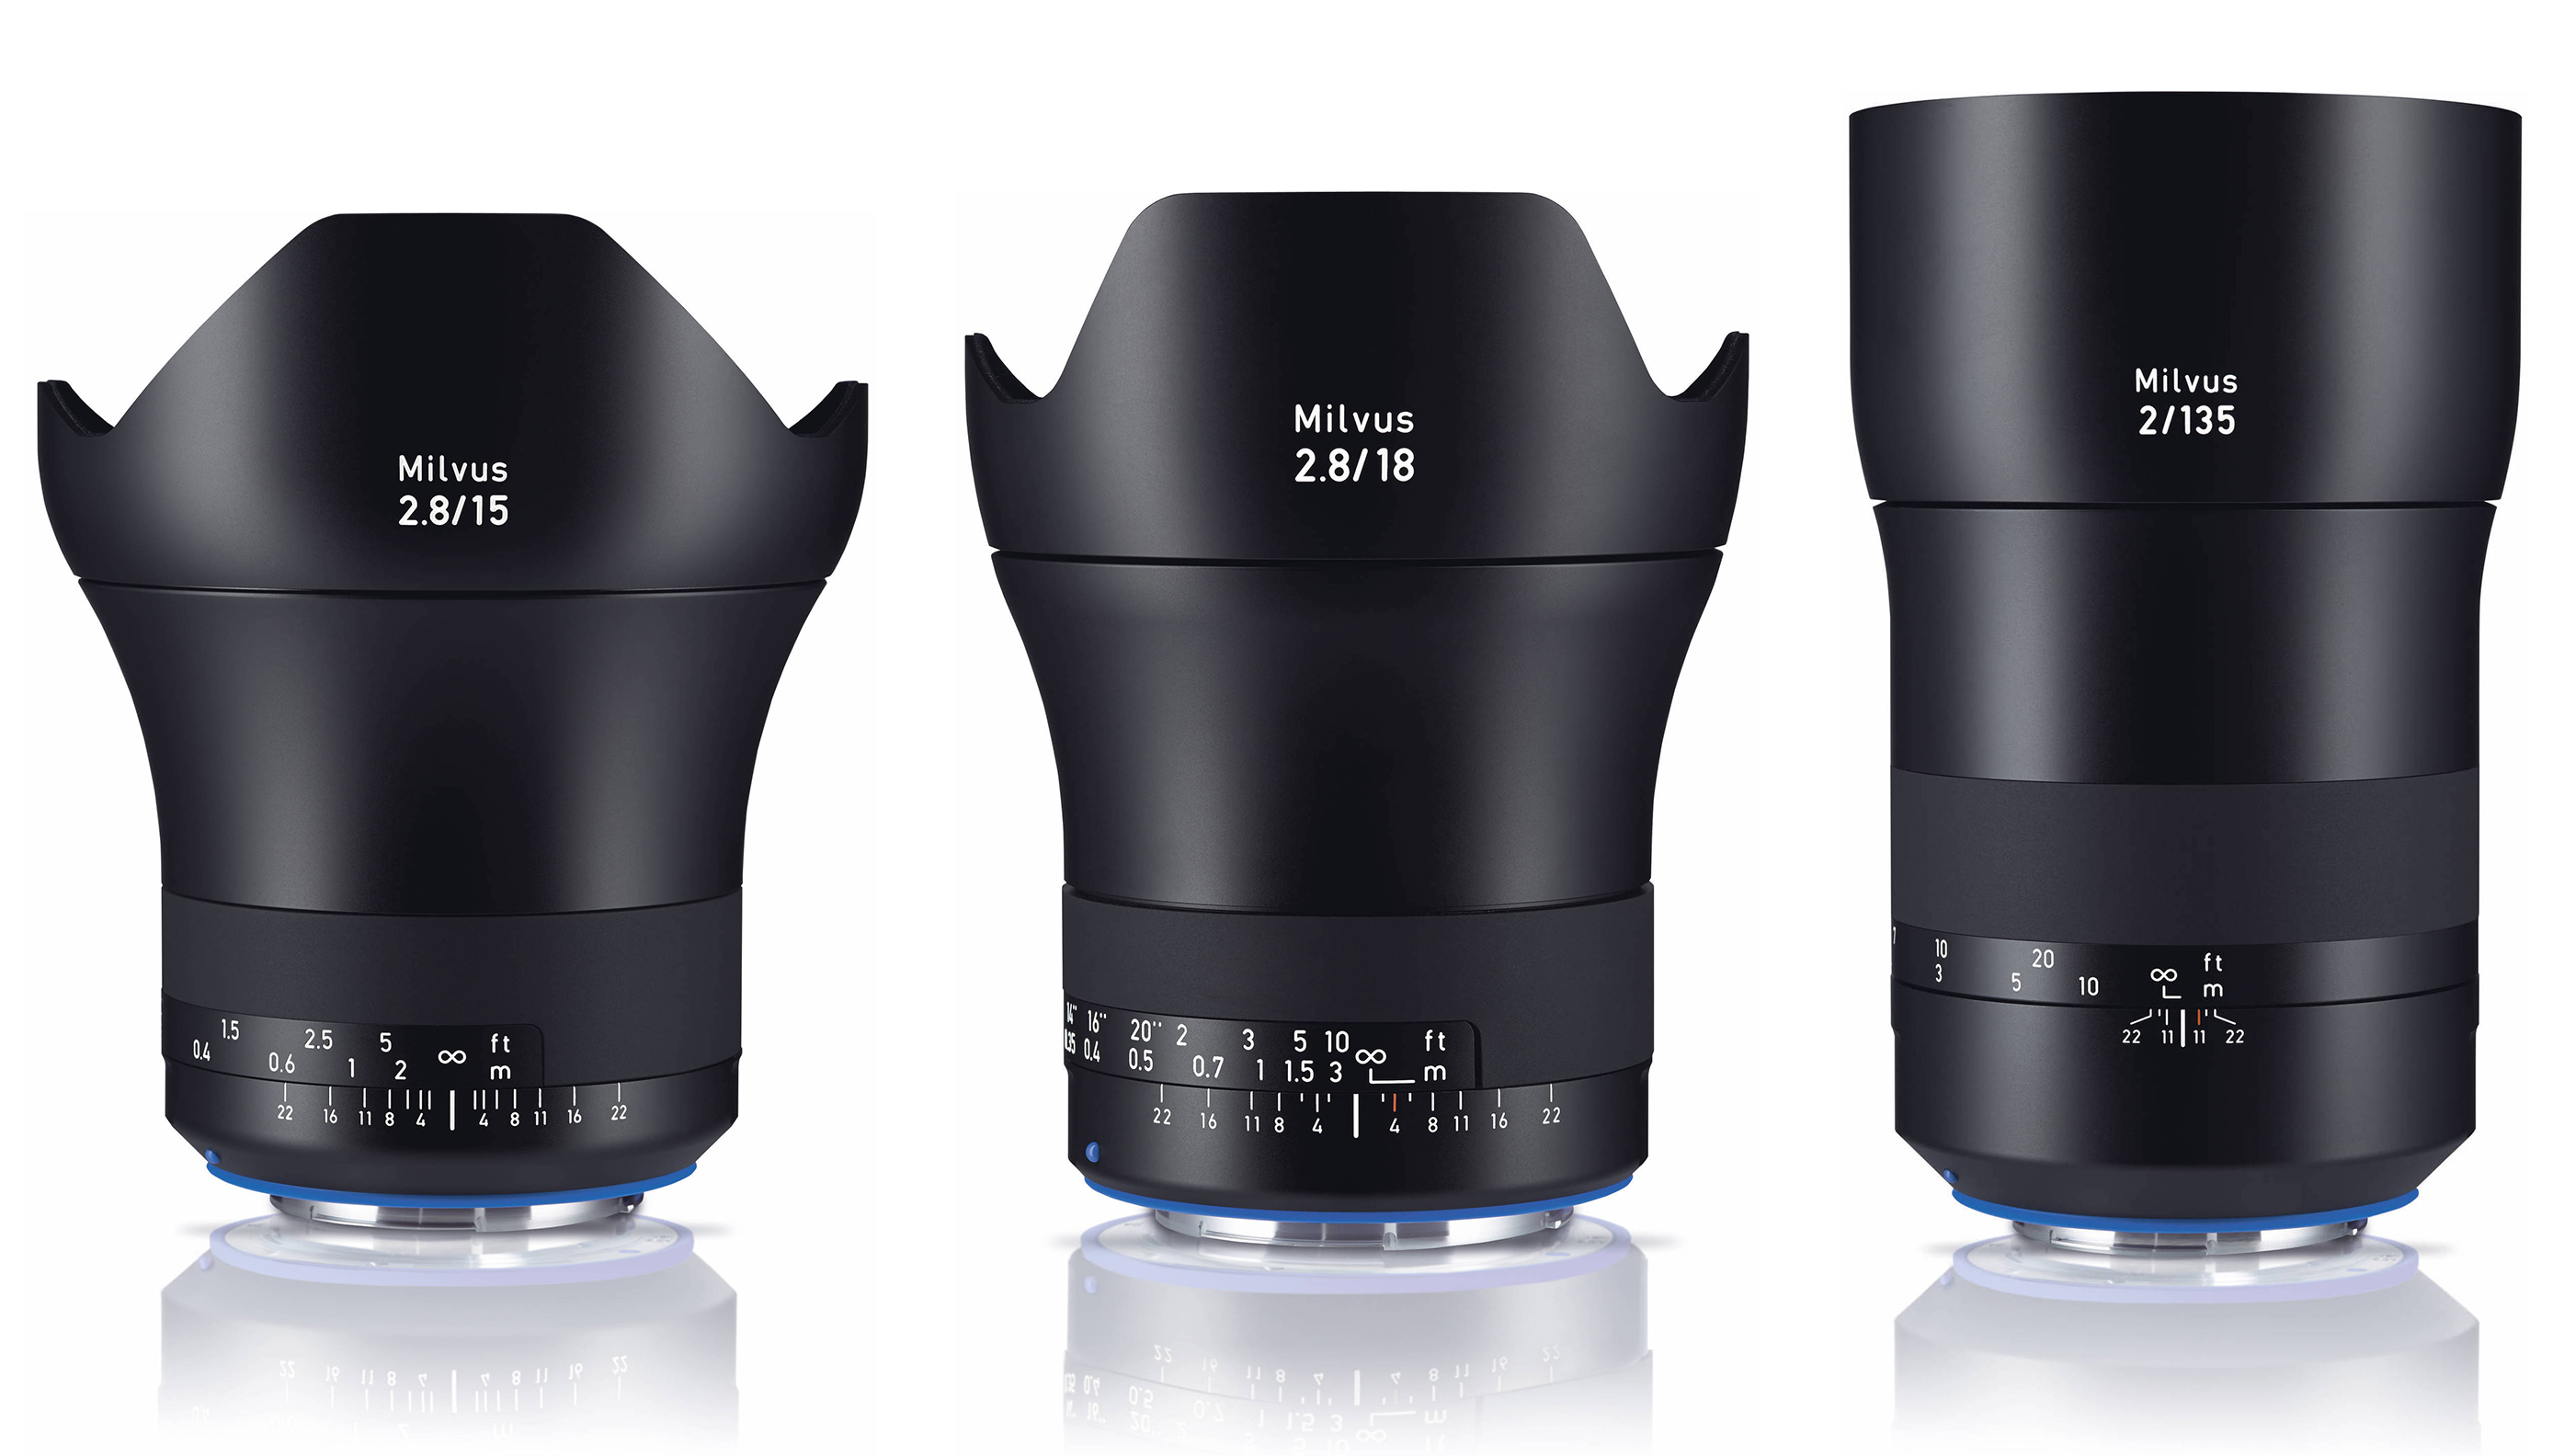 IBC 2016: Zeiss adds to full-frame Milvus lens line with 15mm f/2.8 ...